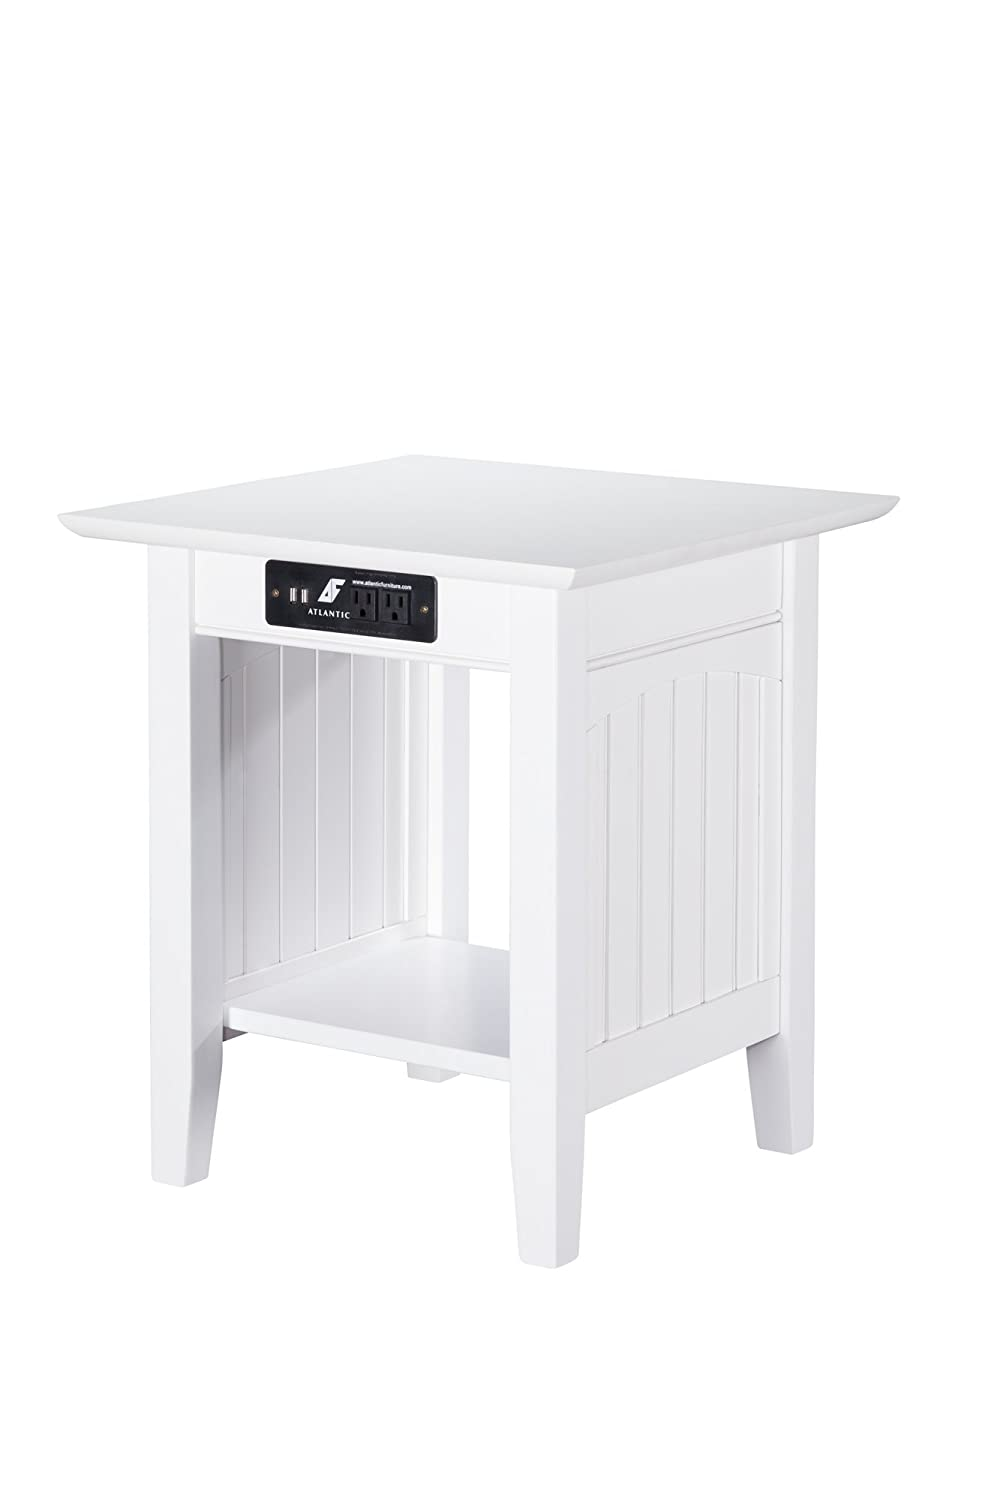 Atlantic Furniture AH14312 Nantucket End Table with Charging Station, White